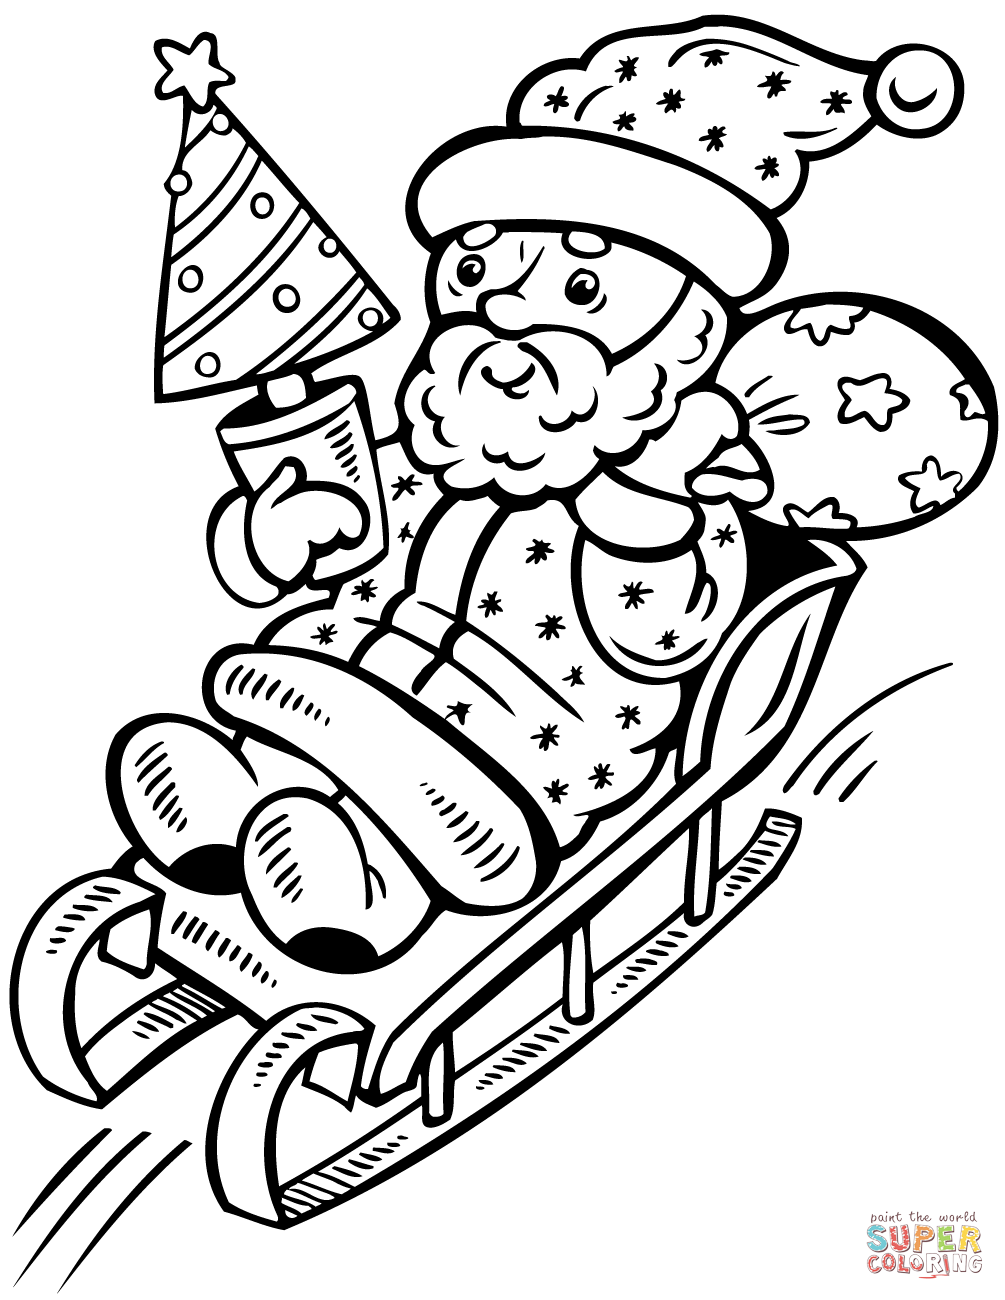 Santa Christmas Tree Coloring Page With Claus On Sleigh Free